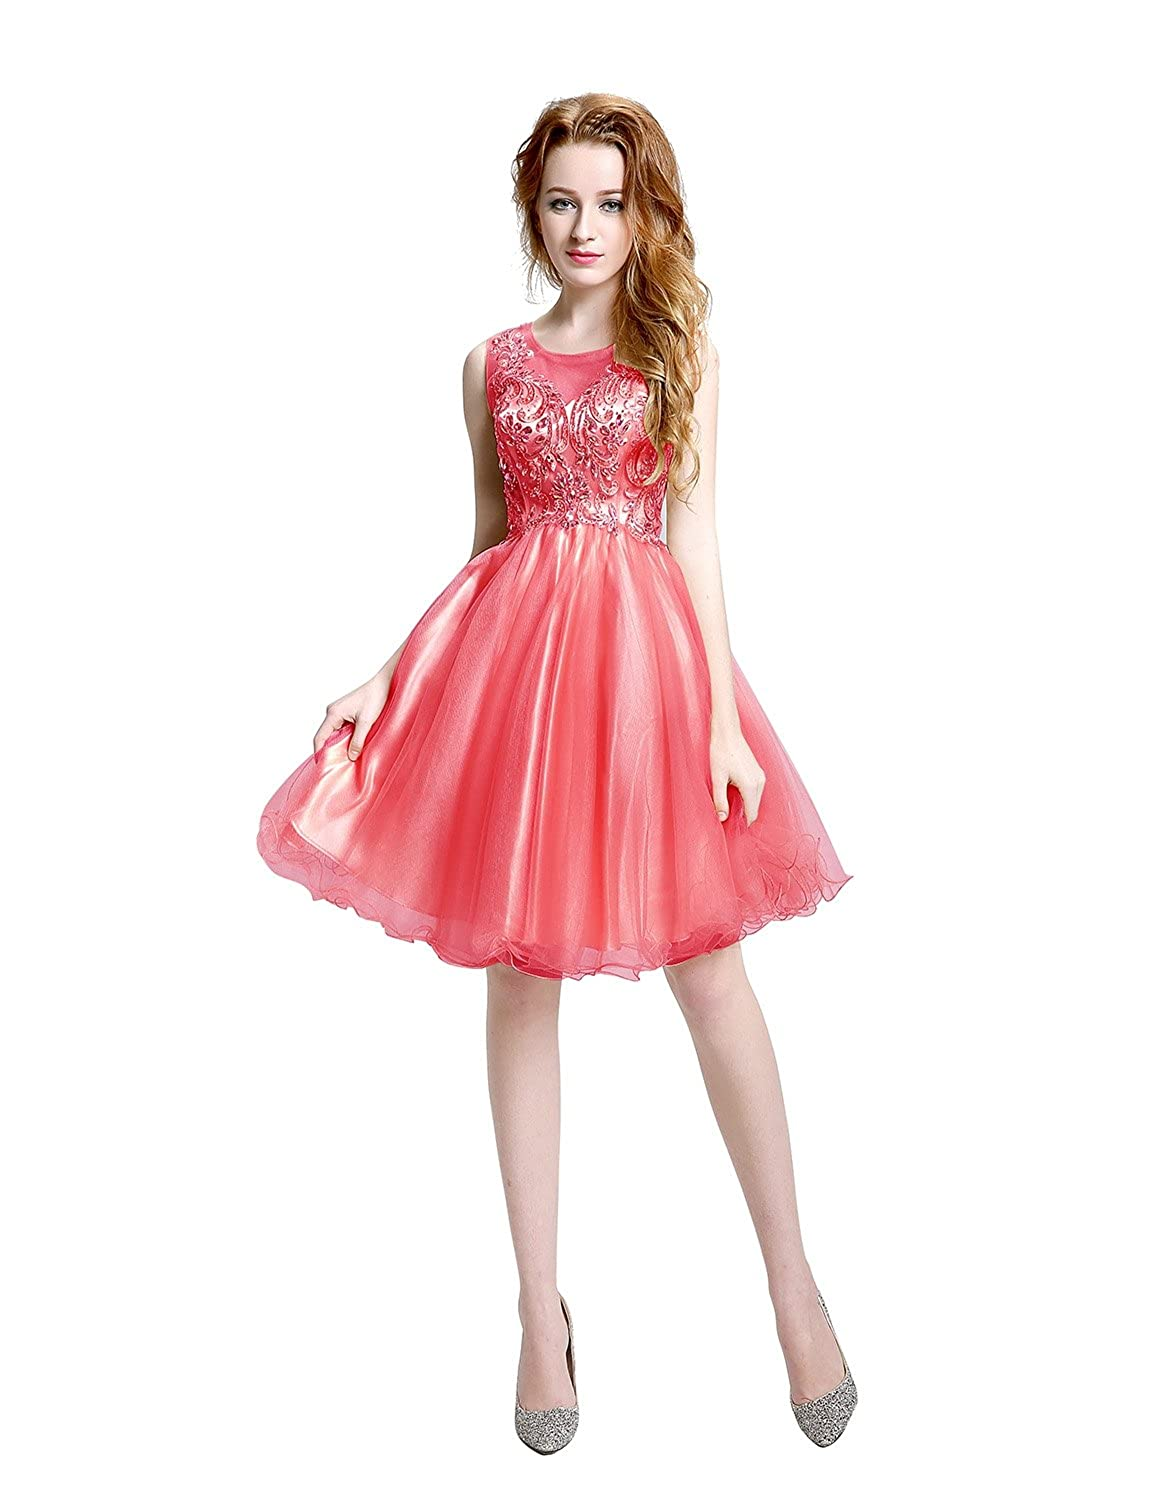 Sarahbridal Women's A-line Tulle Homecoming Rhinestones Short Formal Prom Dress LX142